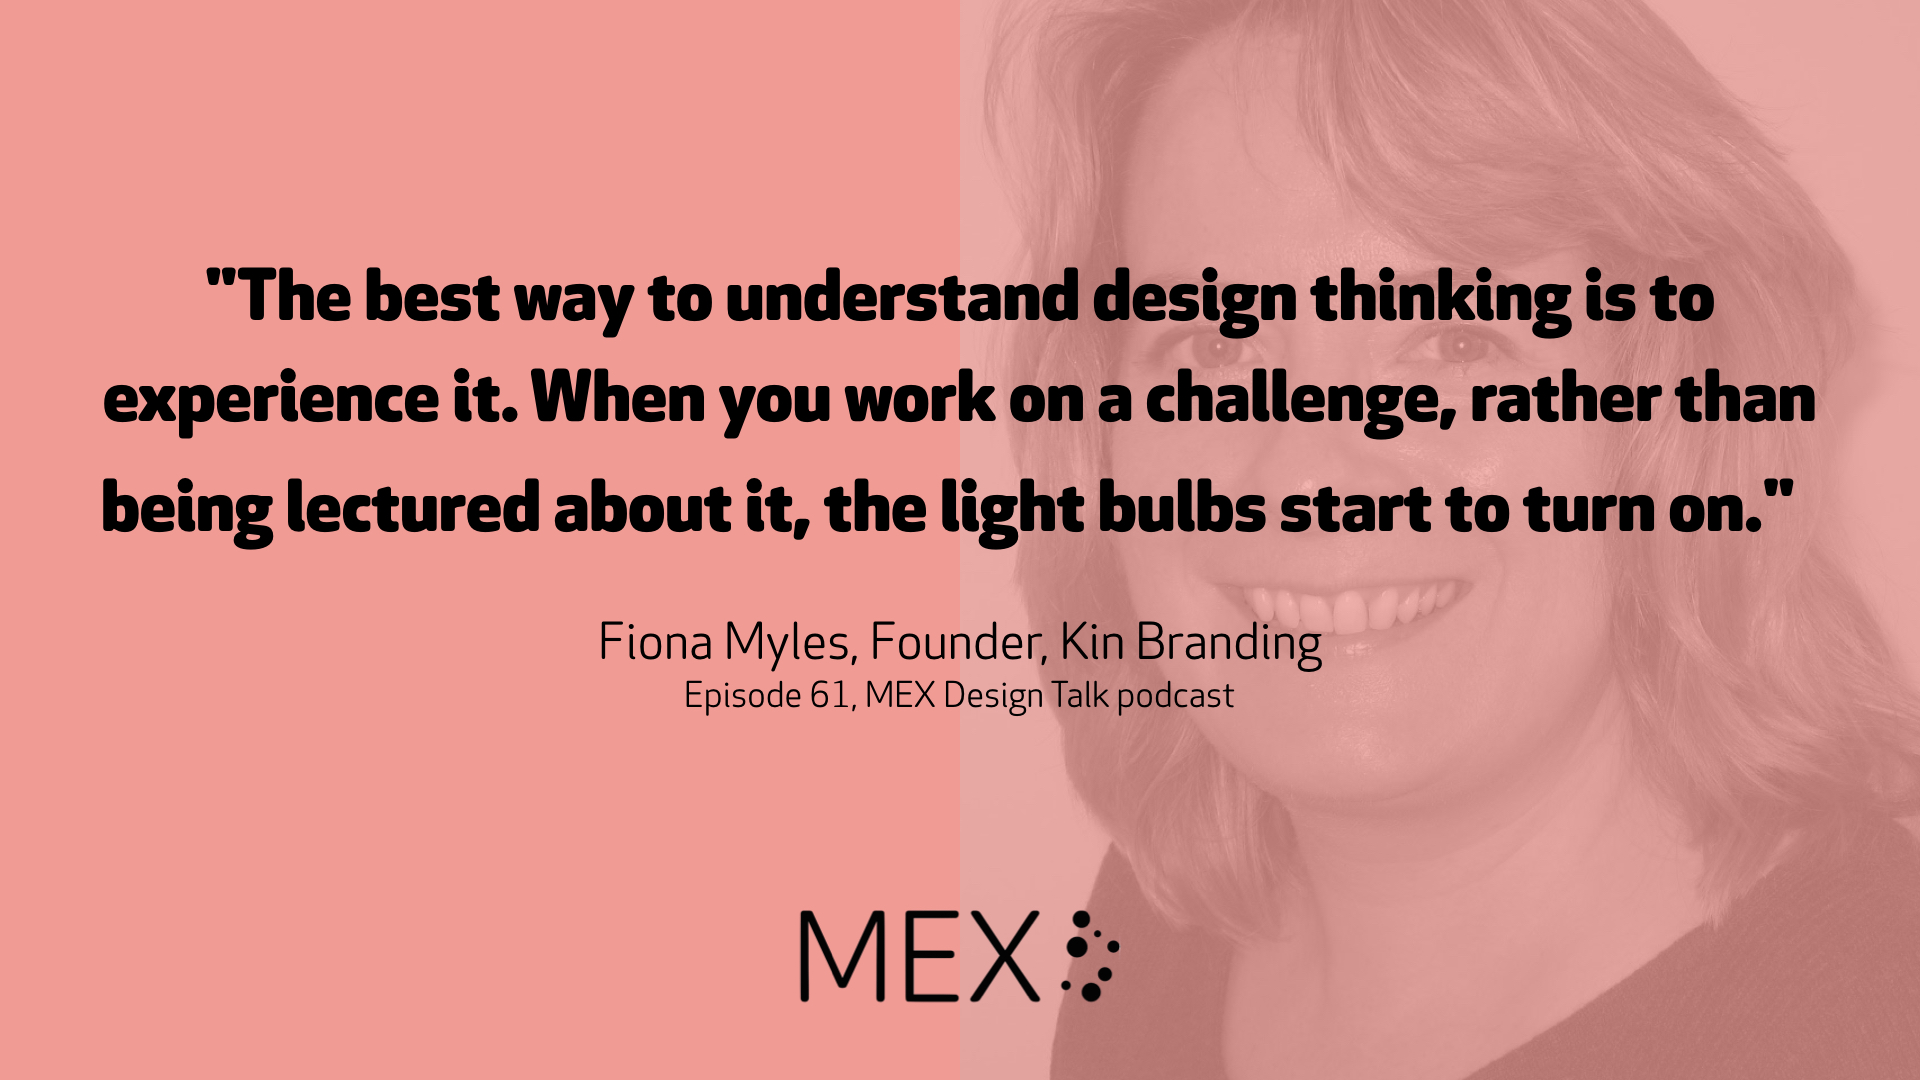 """The best way to understand design thinking is to experience it. When you work on a challenge, rather than being lectured about it, the light bulbs start to turn on."" Fiona Myles, Founder, Kin Branding Episode 61, MEX Design Talk podcast"